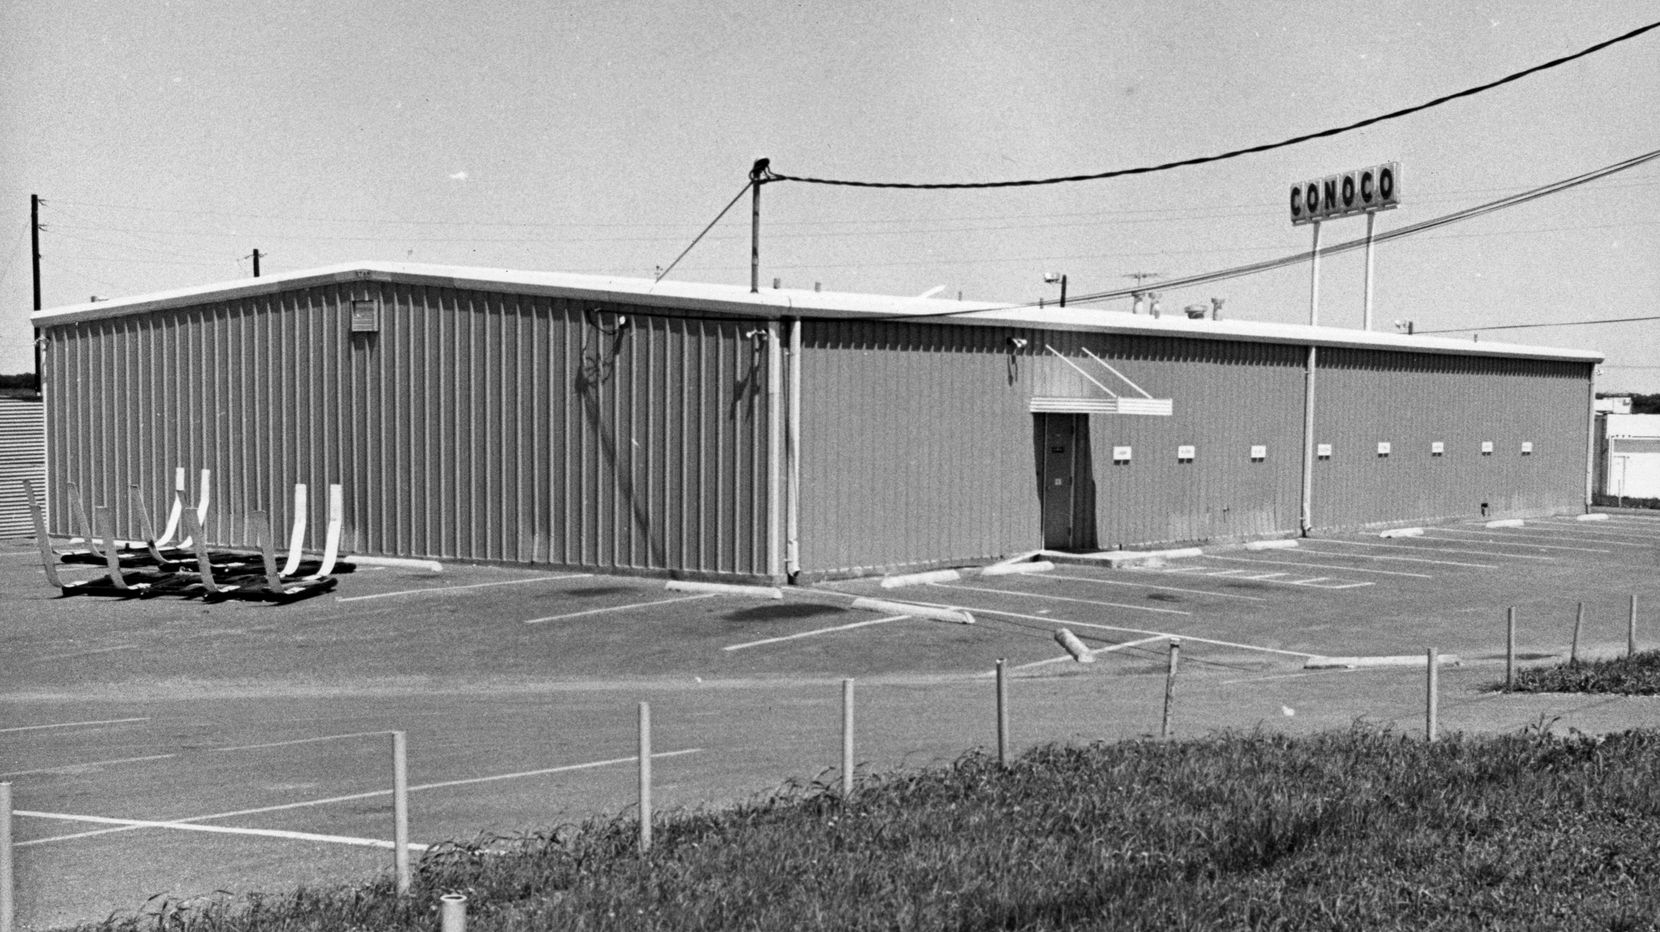 A picture of the blue fieldhouse at the Cowboys' practice facilities on Forest Lane and Abrams. The team practiced at this location from 1967 to 1985.